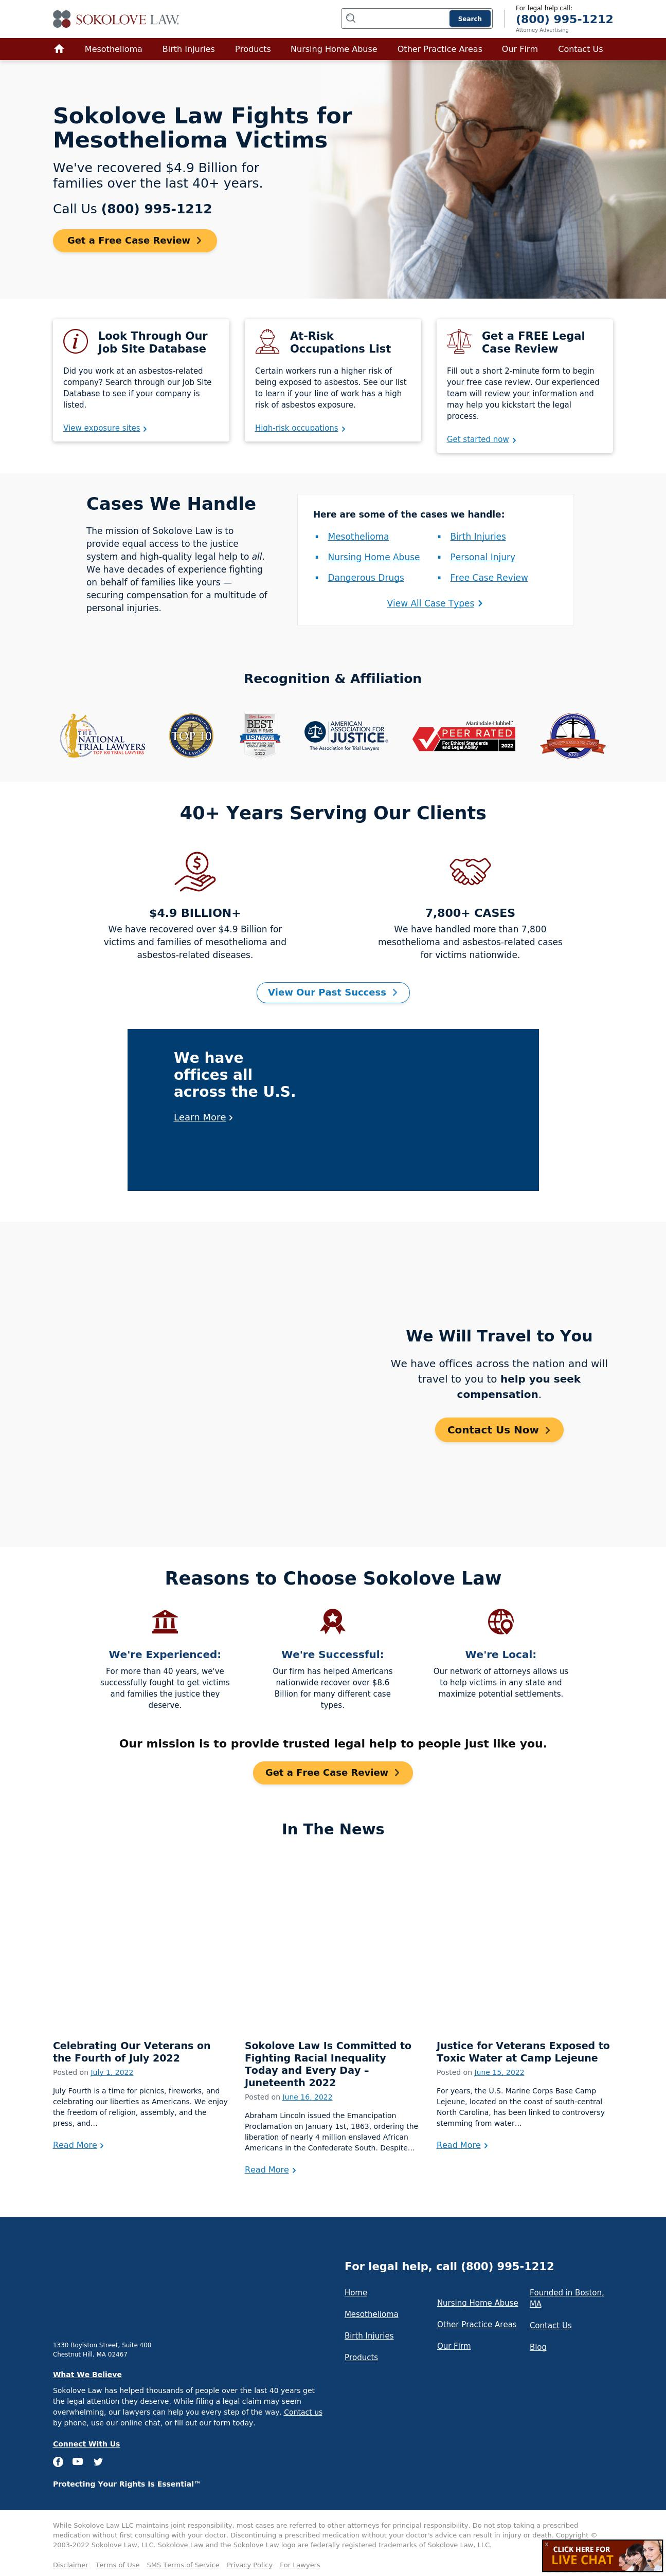 Sokolove Law, LLC - Wellesley MA Lawyers